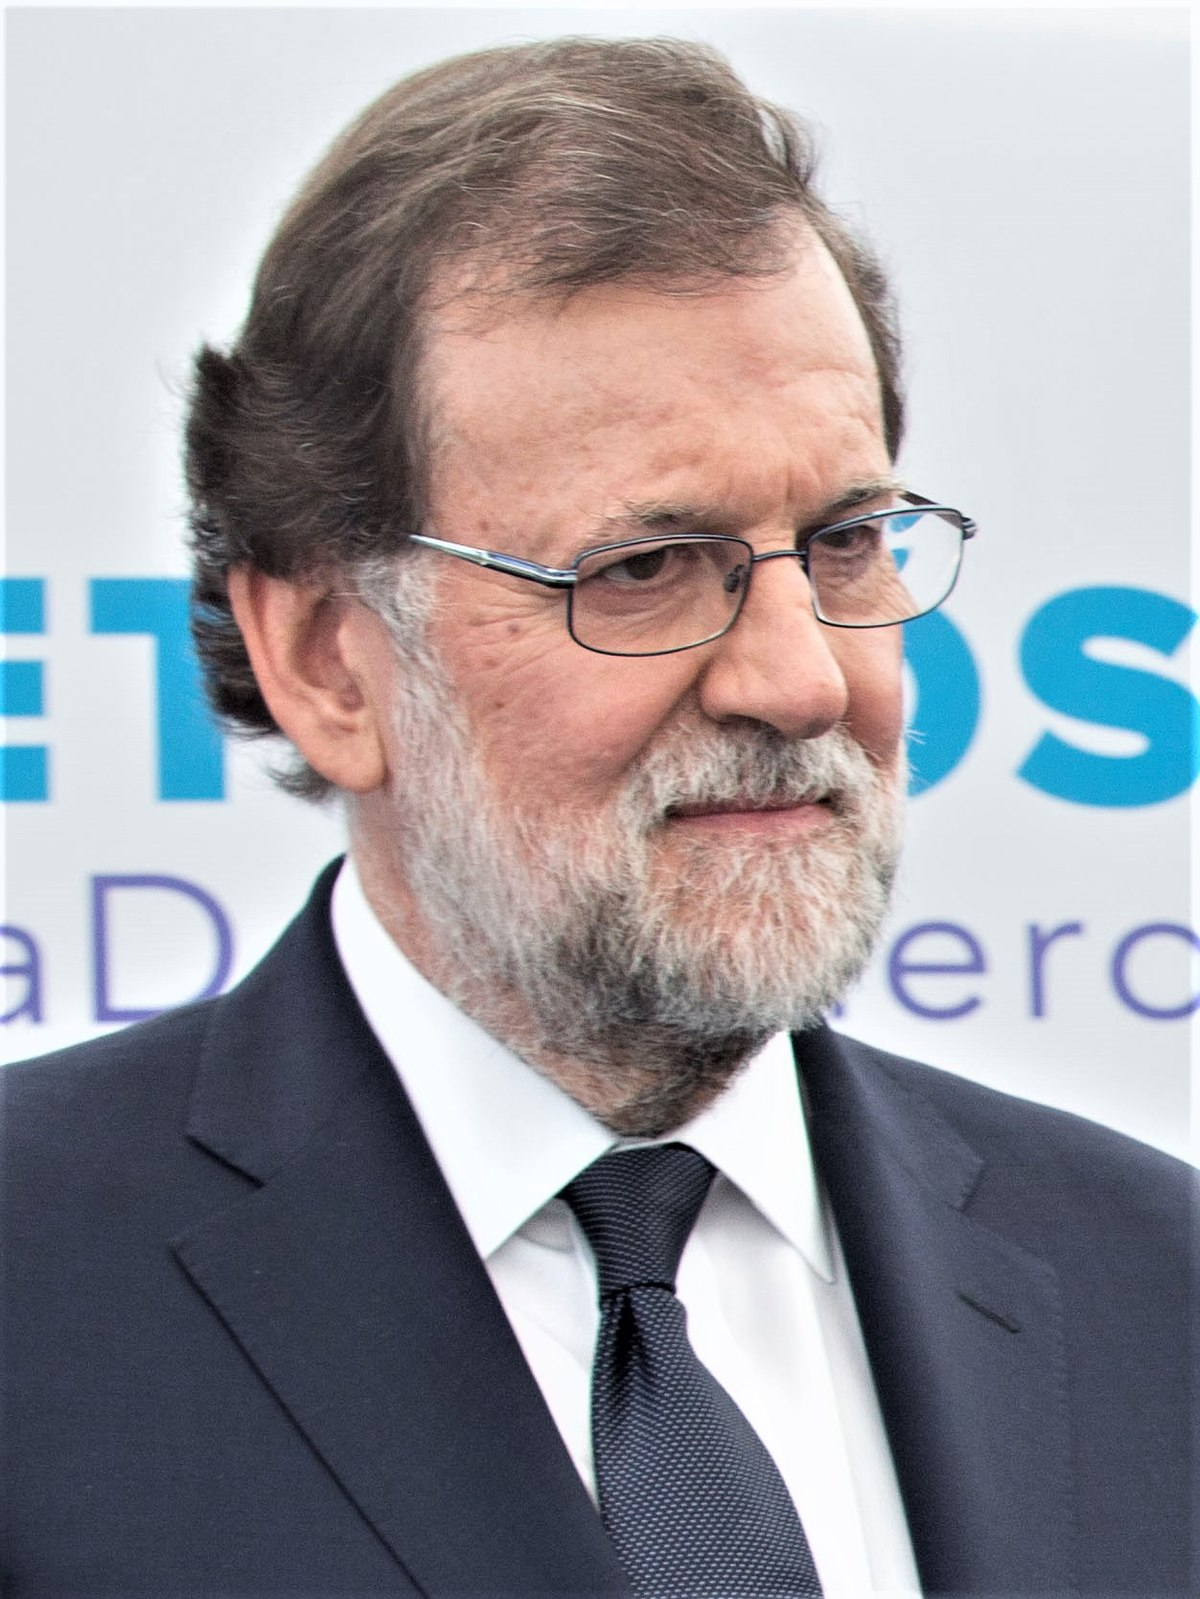 https://upload.wikimedia.org/wikipedia/commons/thumb/9/93/Mariano_Rajoy_2017_%28cropped_4x3%29.jpg/1200px-Mariano_Rajoy_2017_%28cropped_4x3%29.jpg